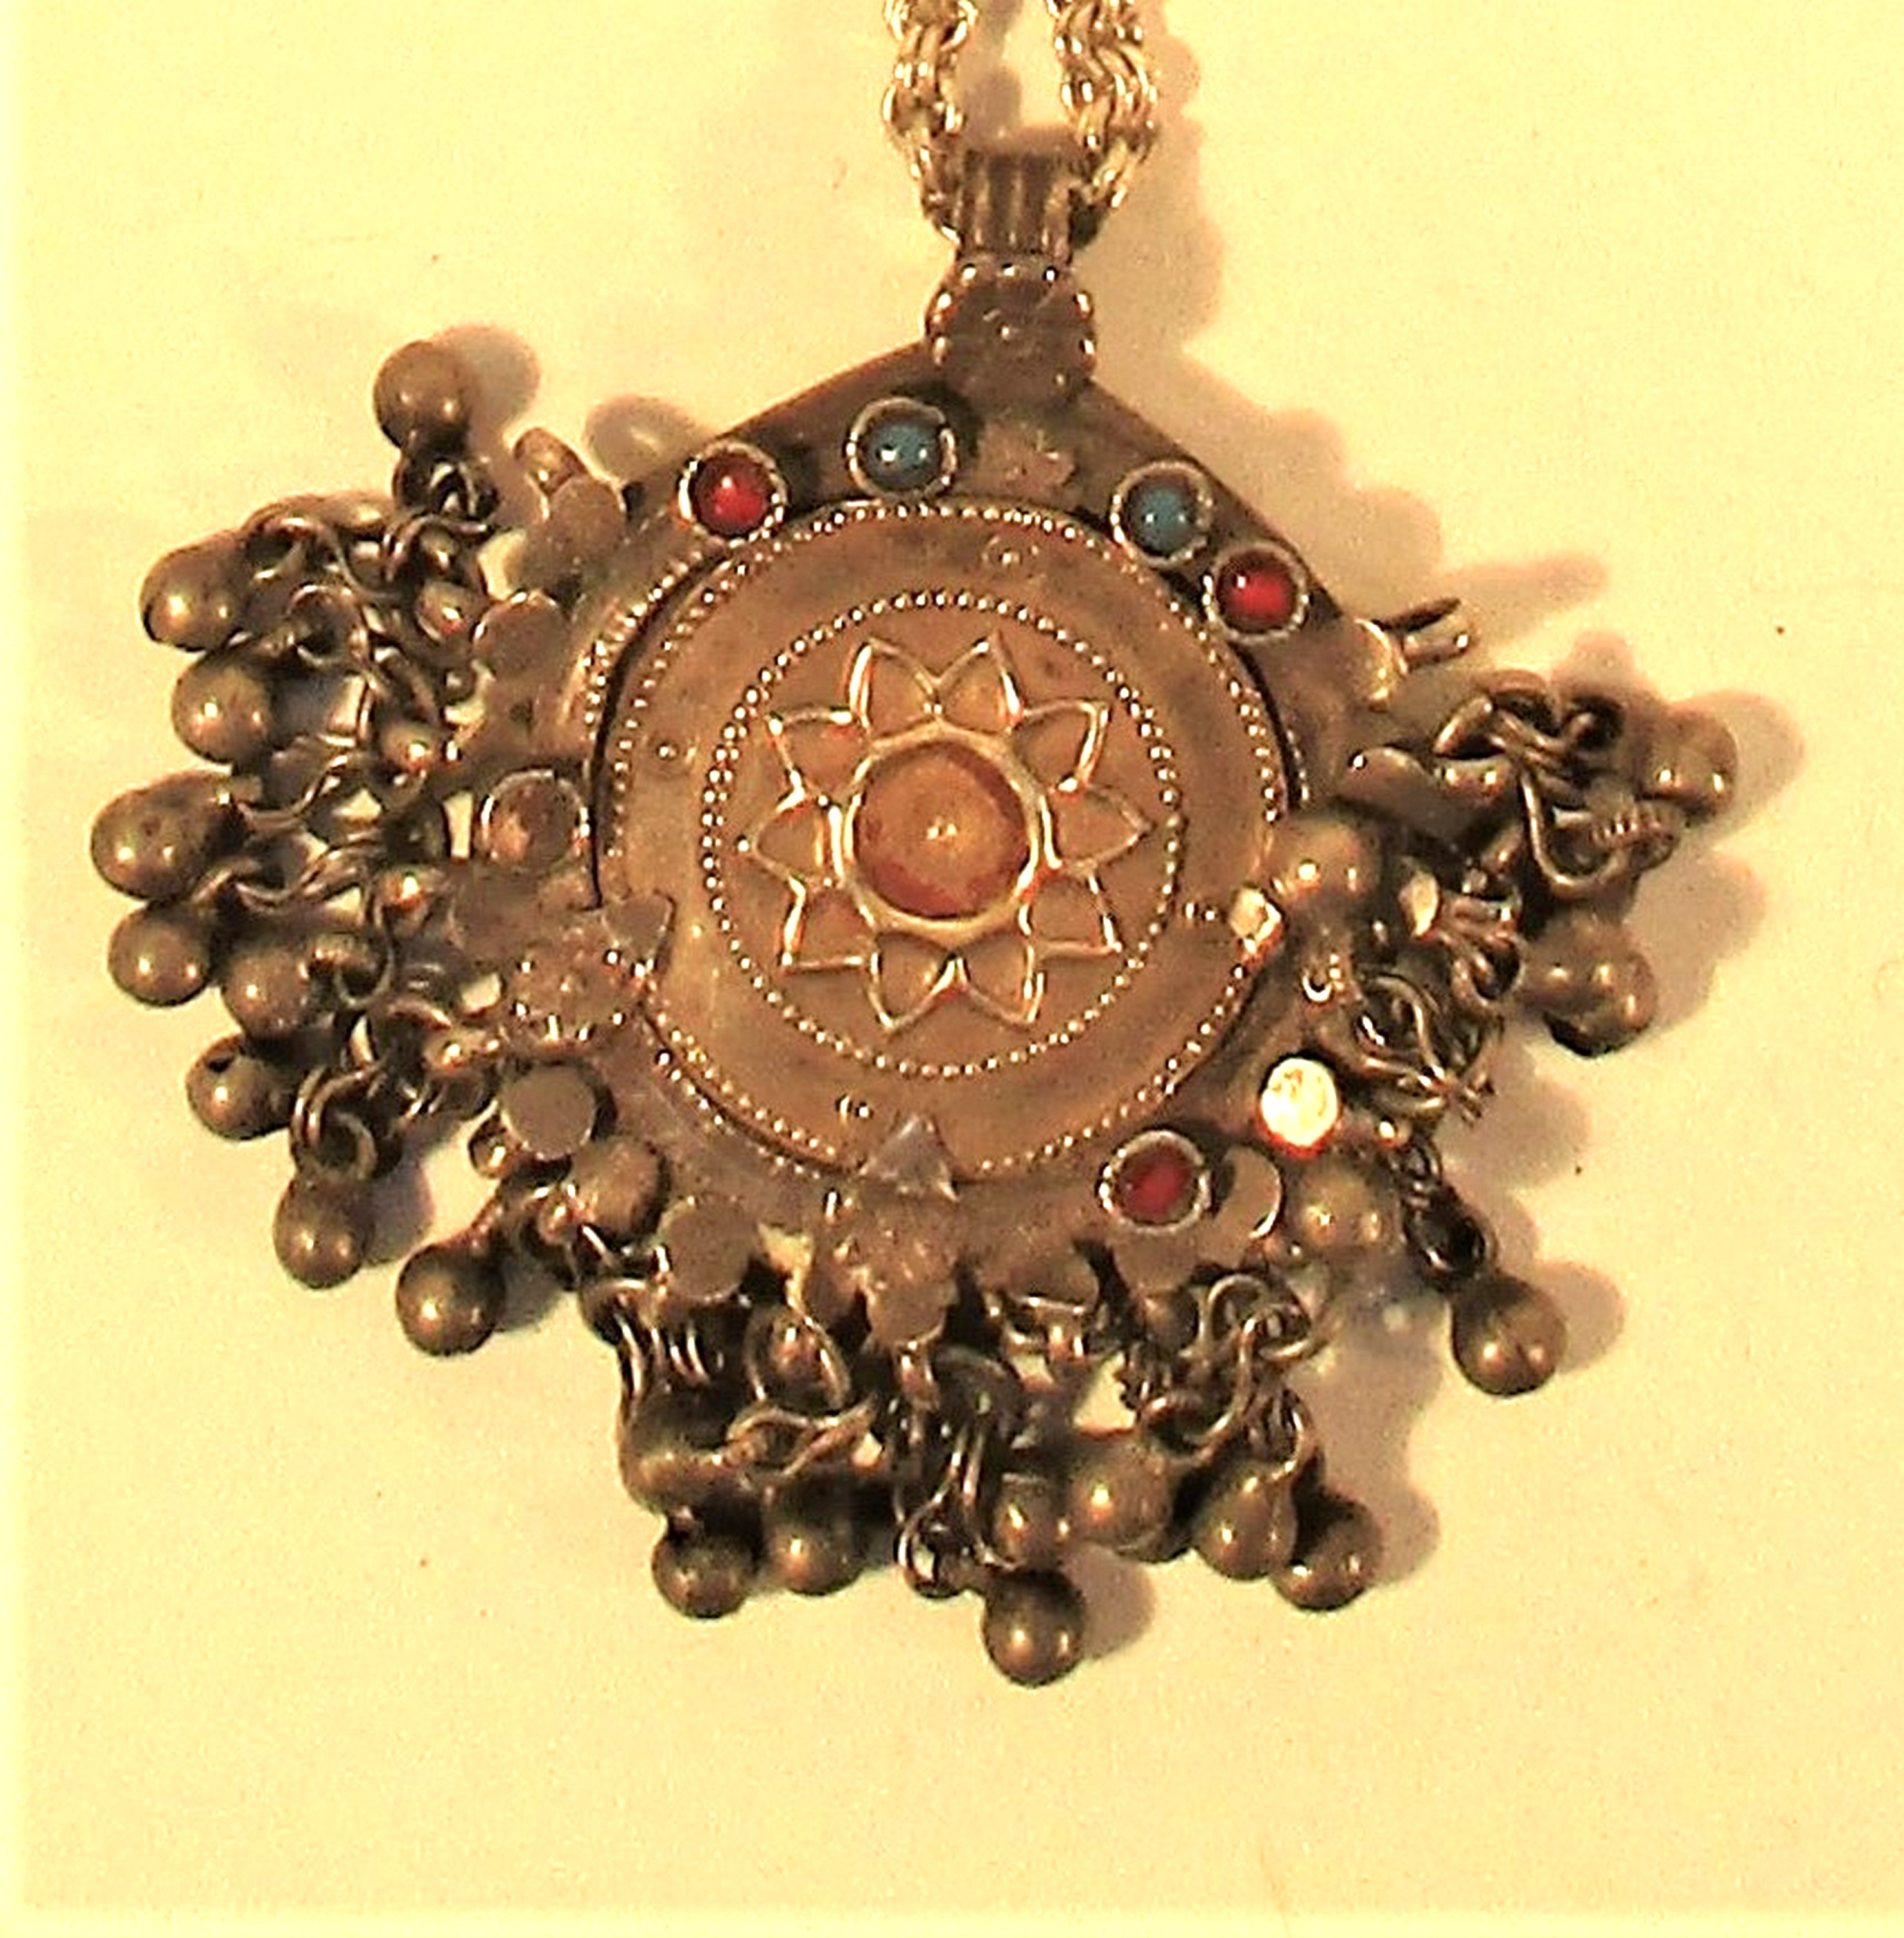 Pendant with antique Nepalese white metal ornament on a chain. 30cm. - Image 2 of 2